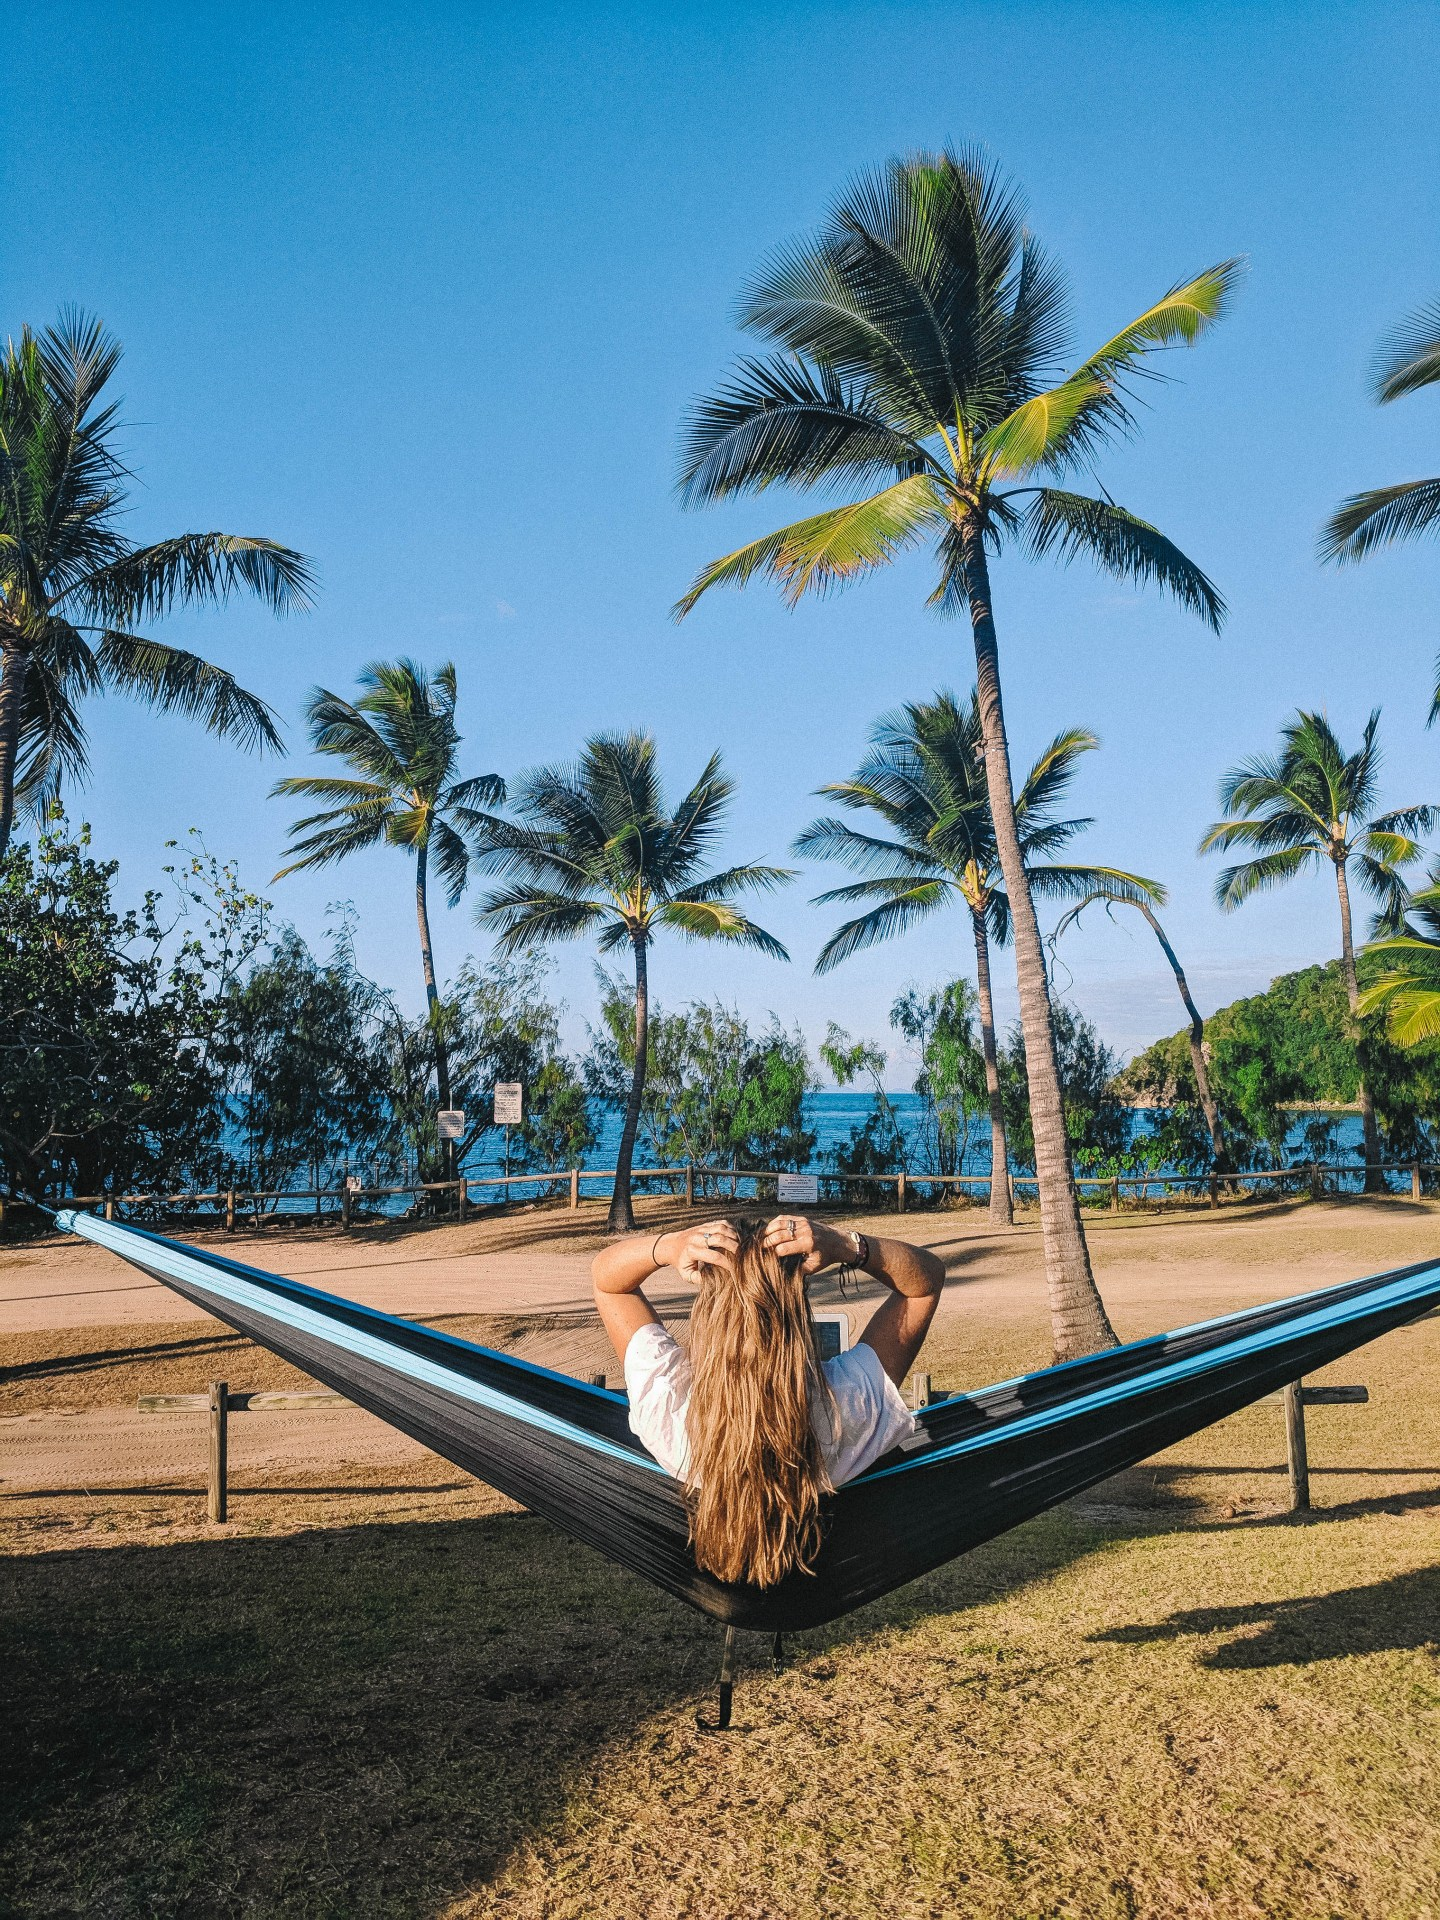 So You Wanna Be A Digital Nomad?